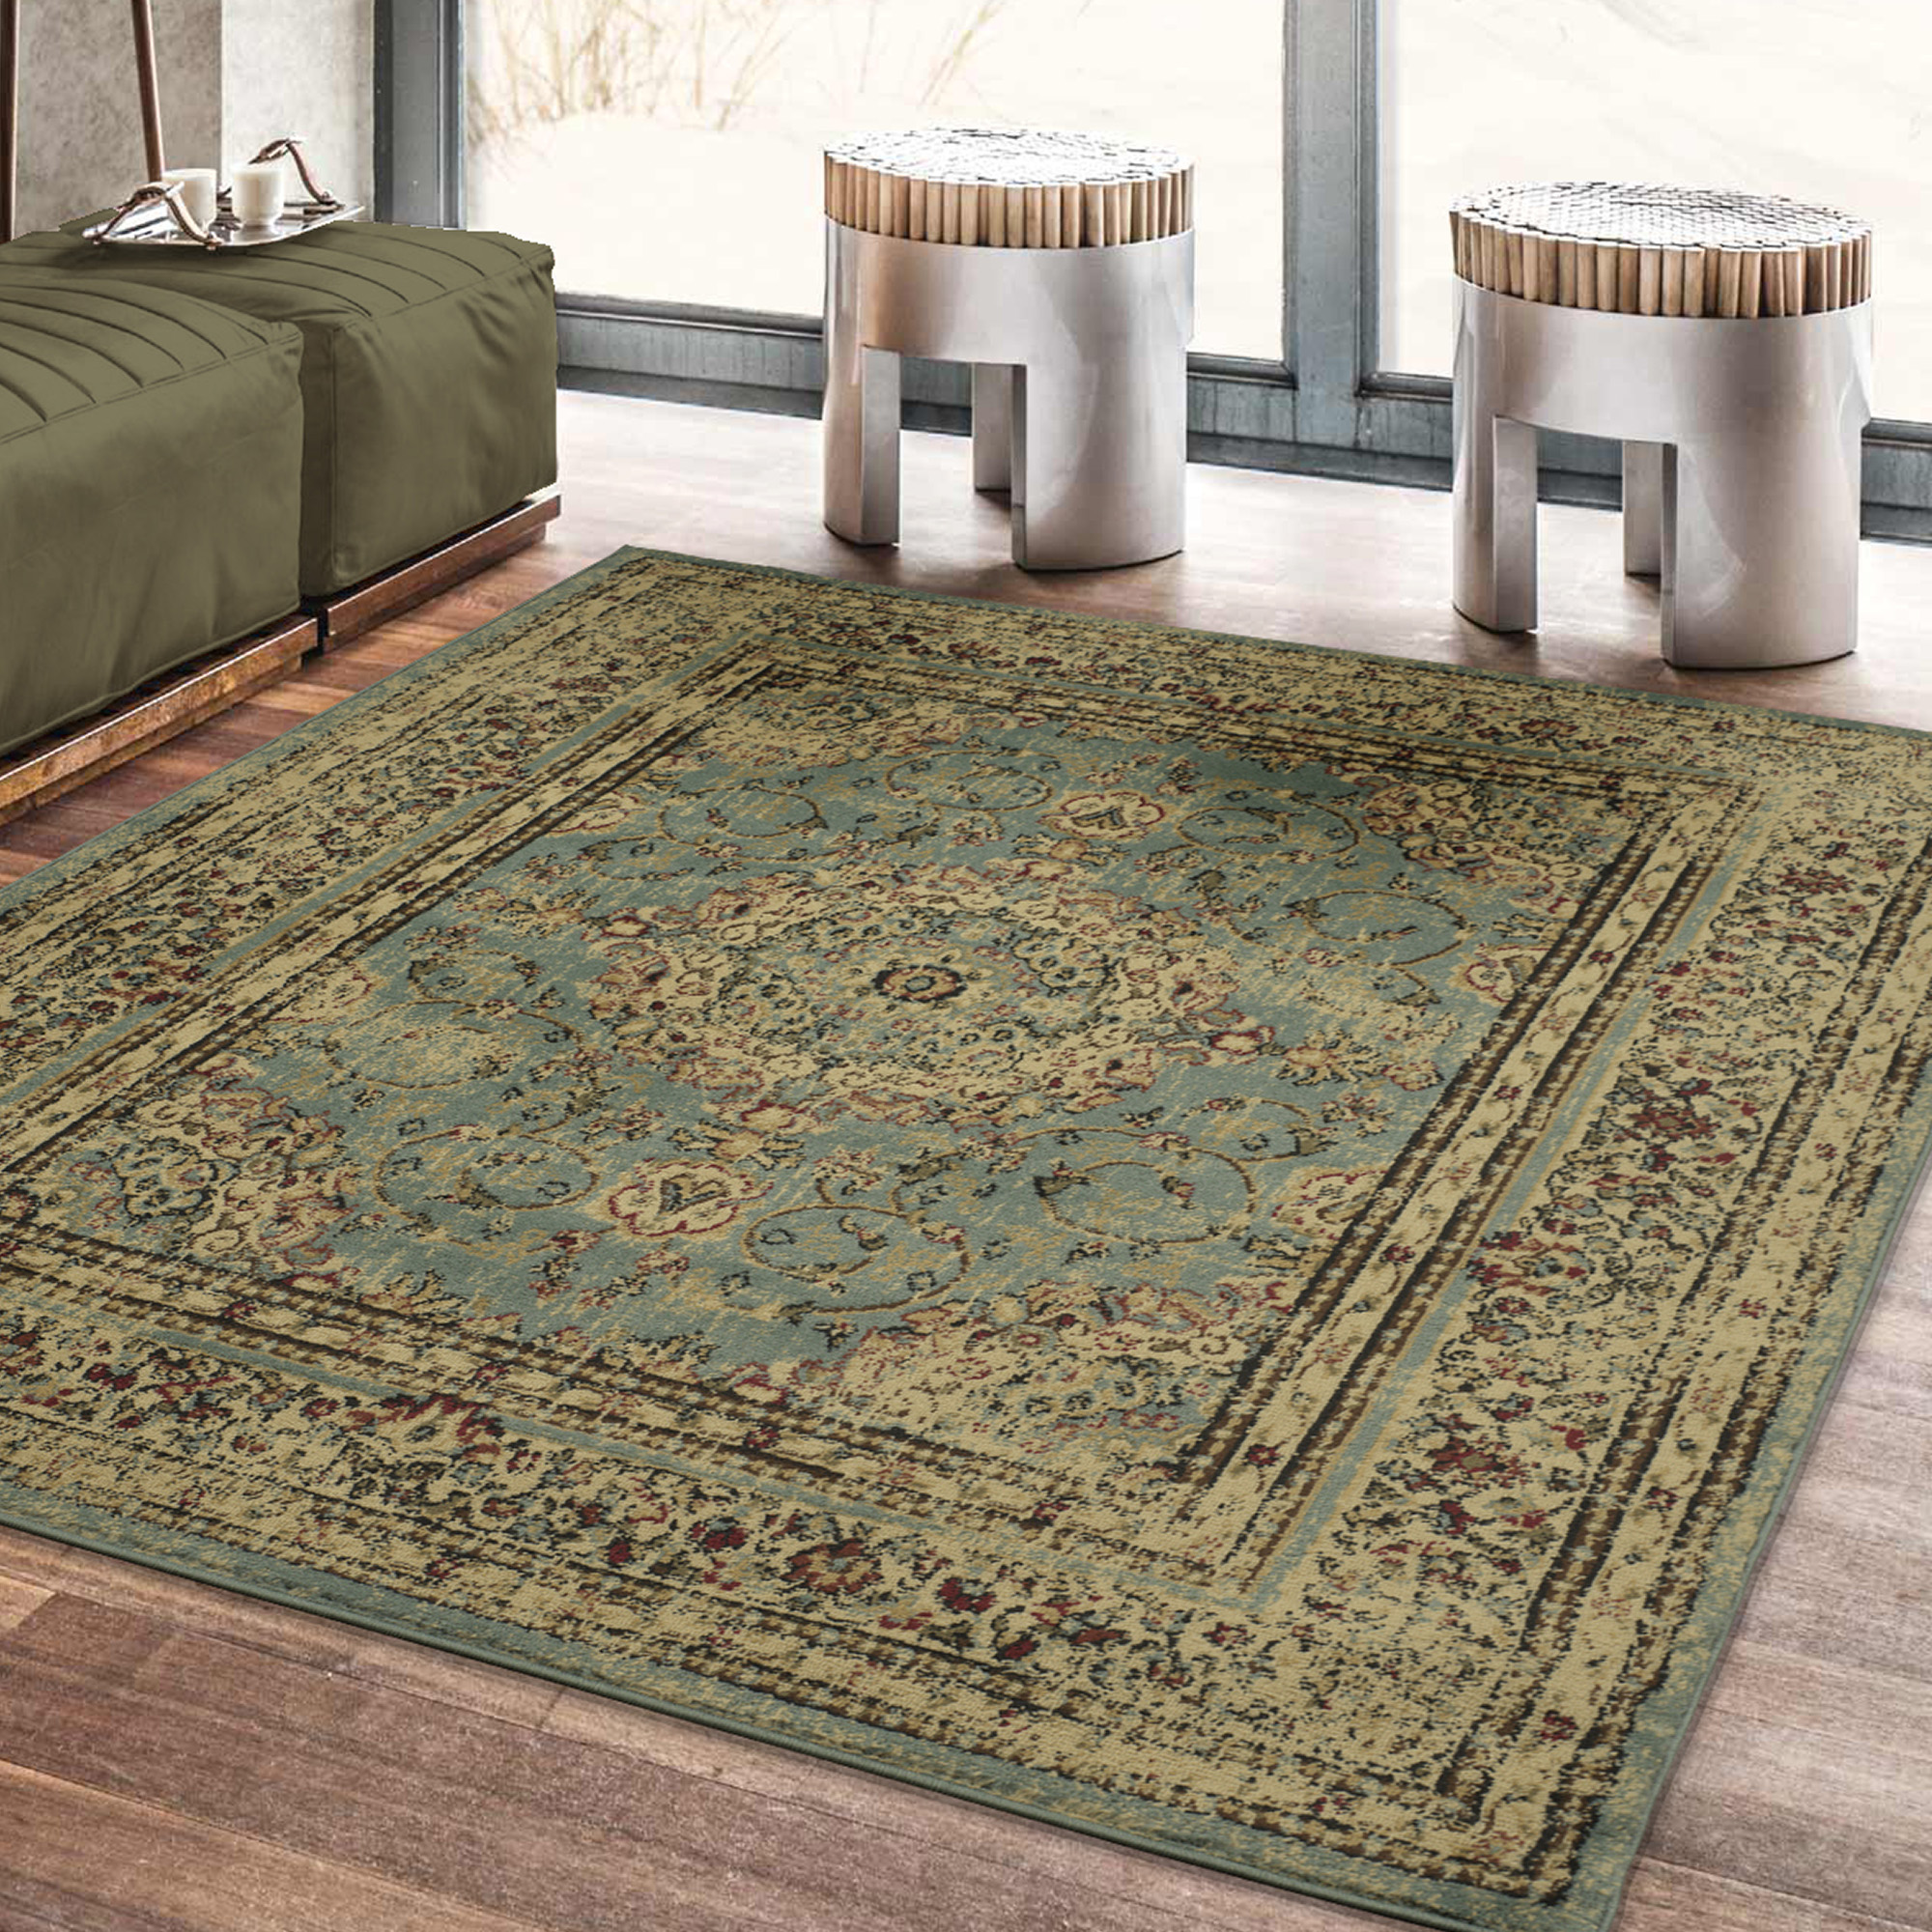 Ottomanson Royal Collection Distressed Medallion Design Area Rug